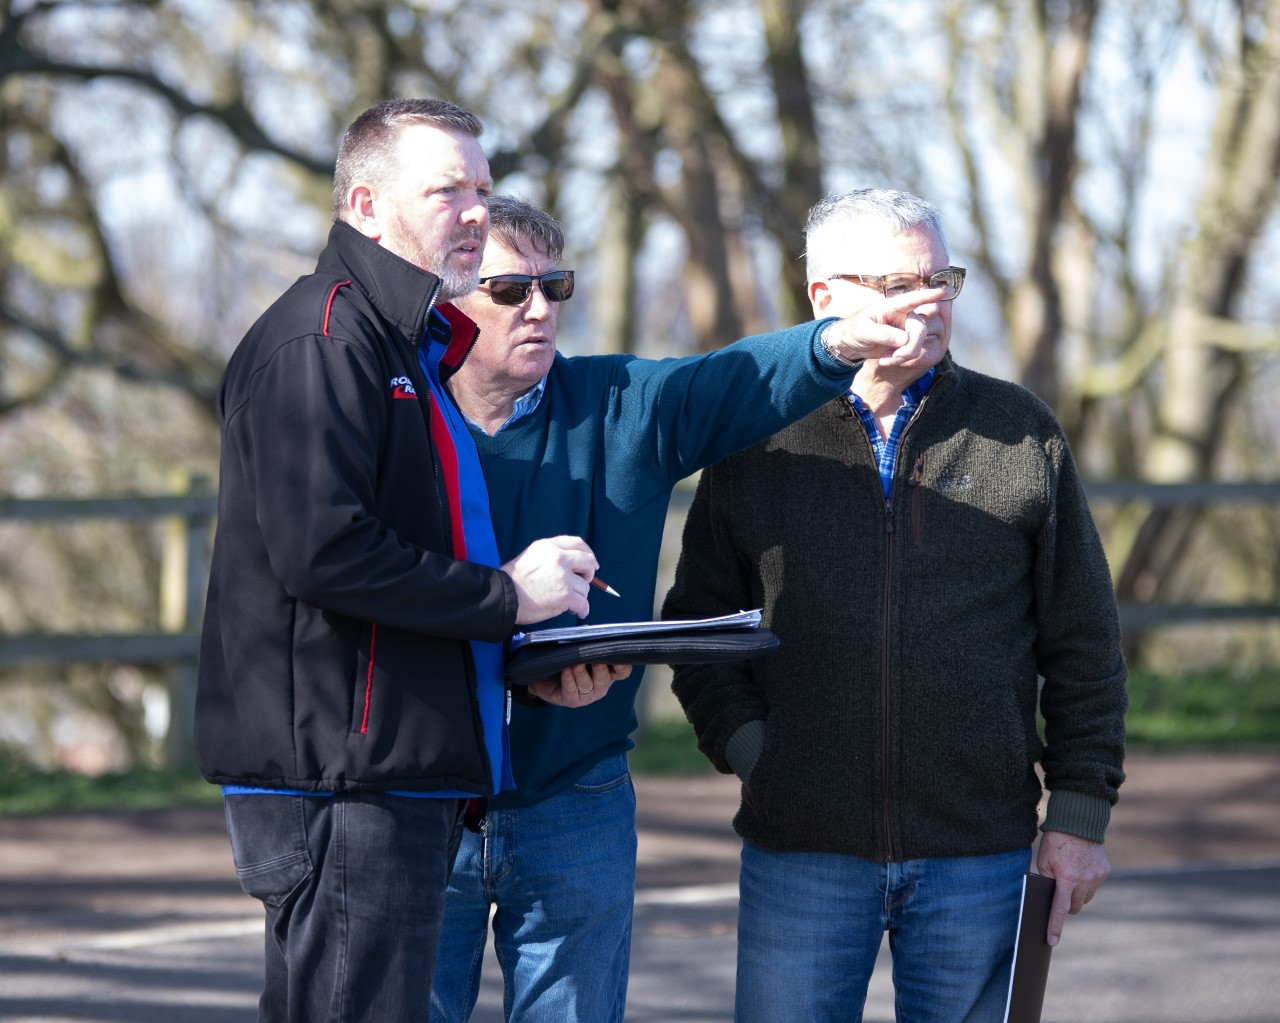 New Oliver's Mount Events Organising Team Take Positives From ACU Officials Visit